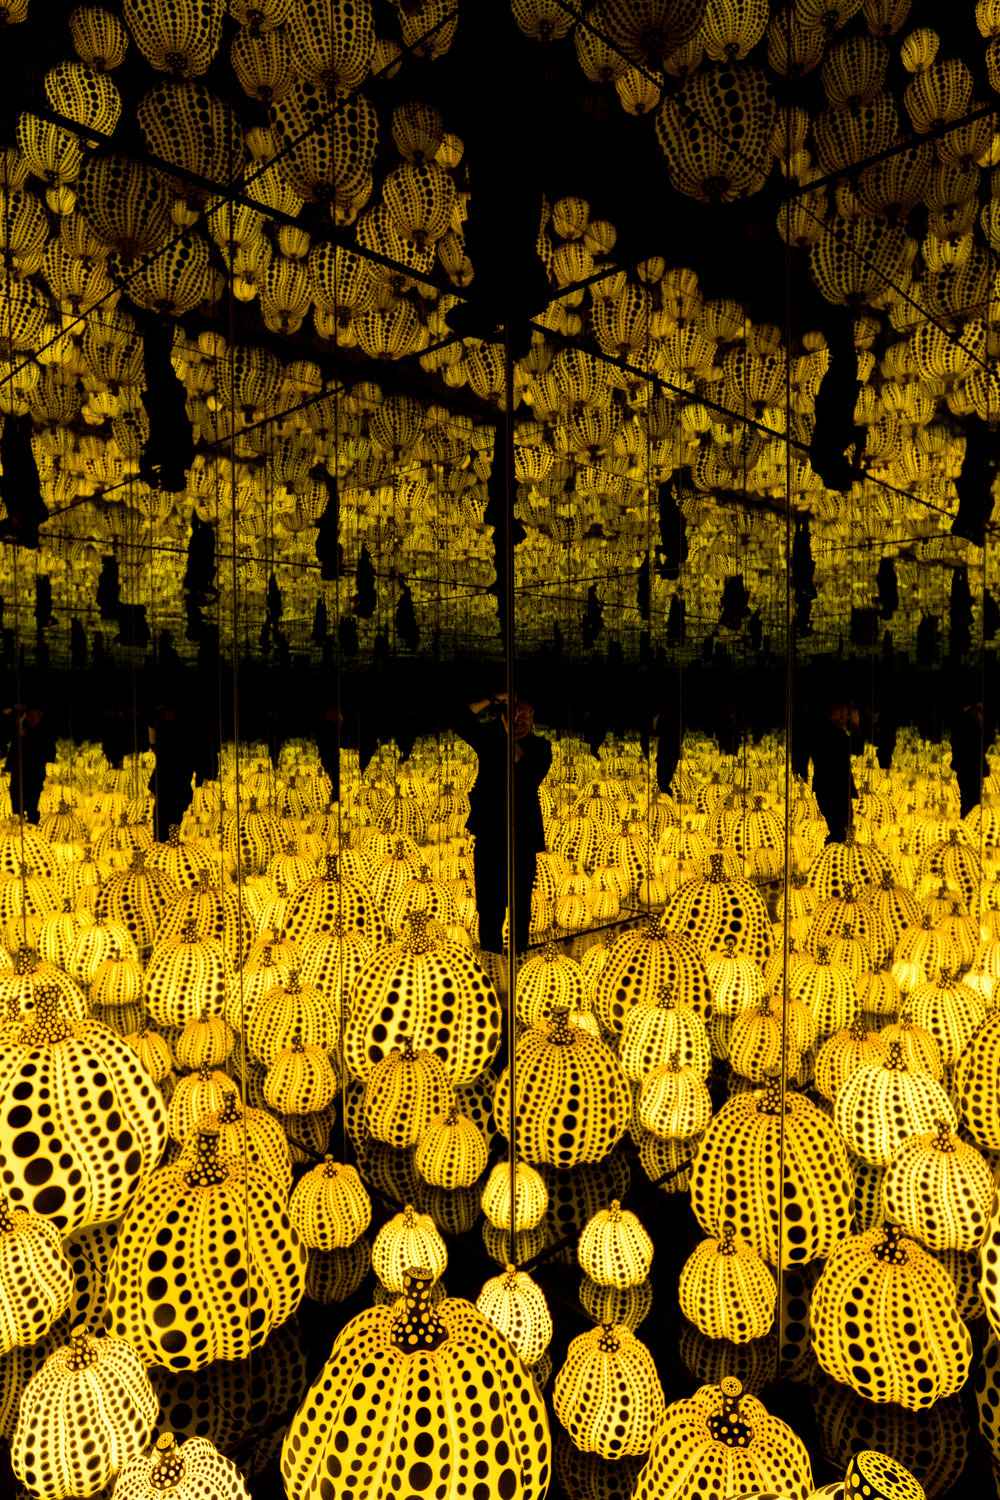 The absurd and inspiring interior of Infinity Mirrored Room —All the Eternal Love I Have for the Pumpkins.